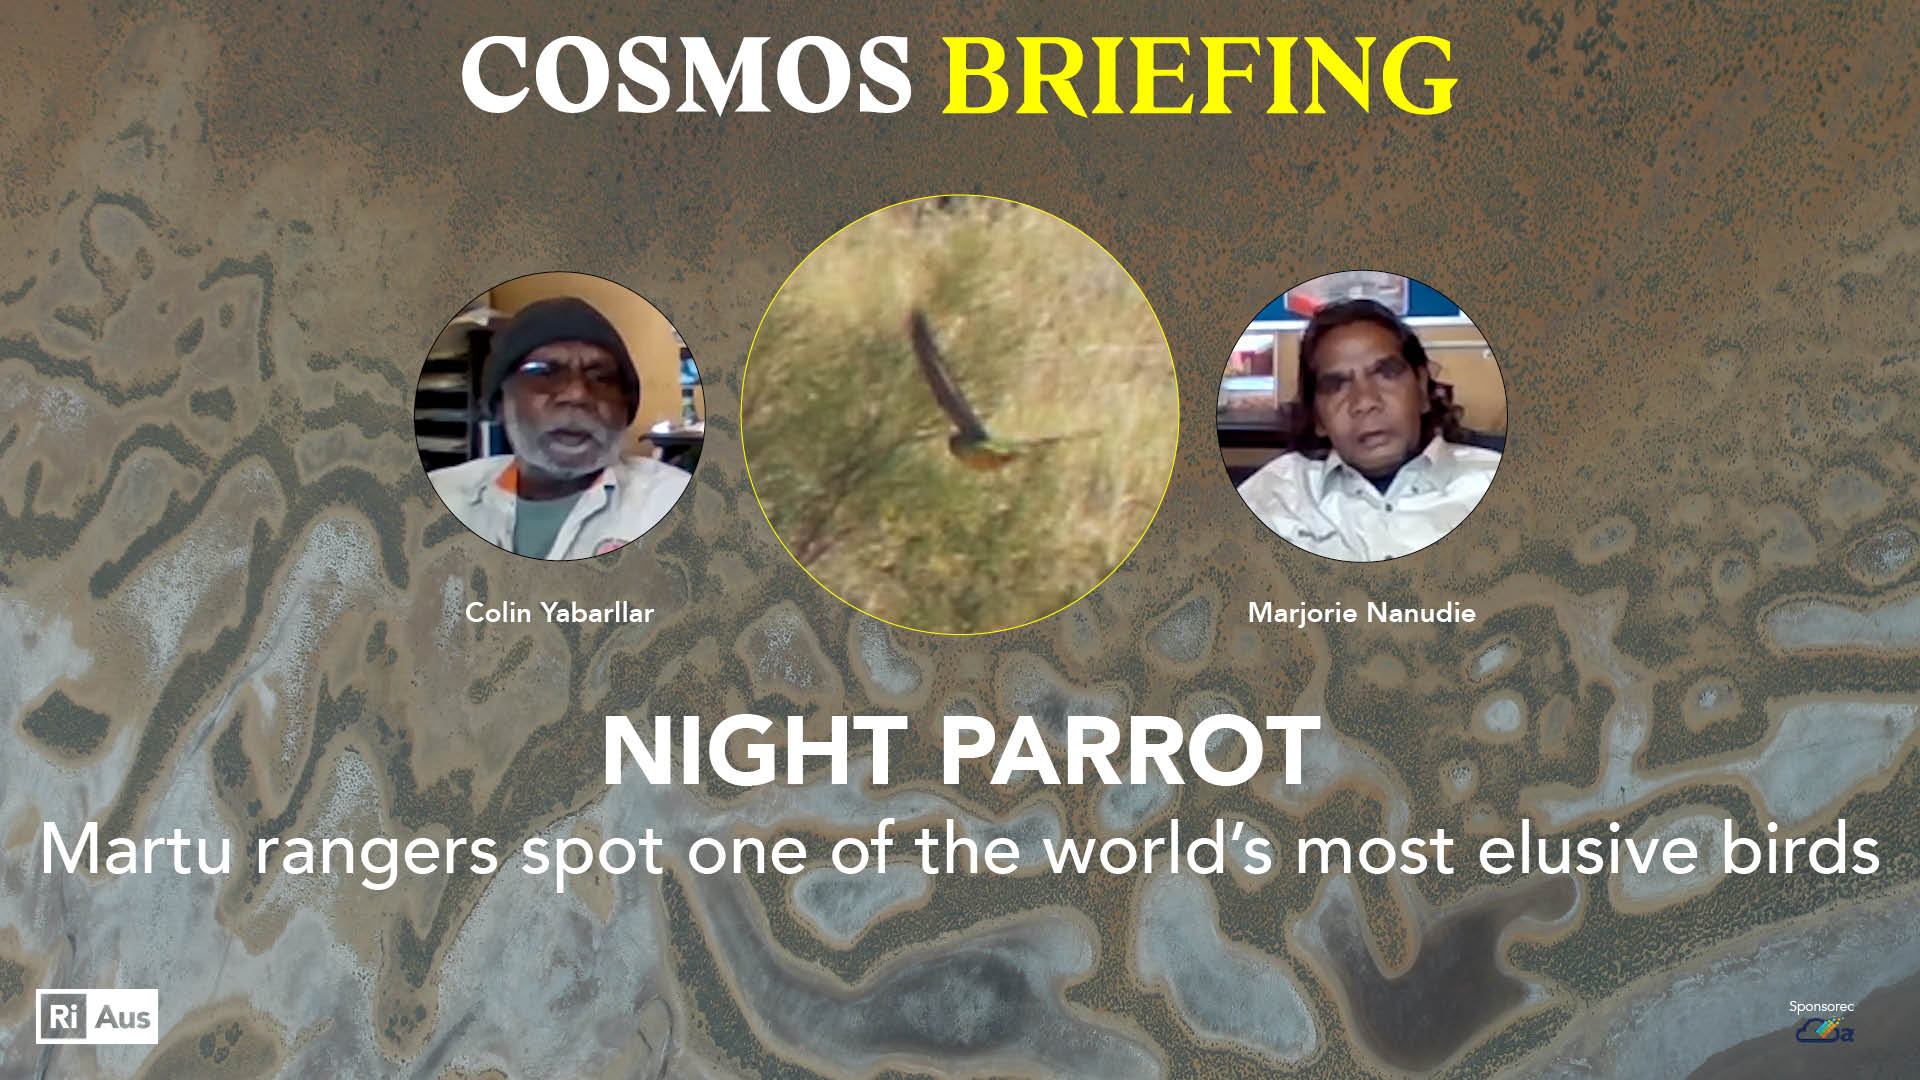 The night parrot rangers